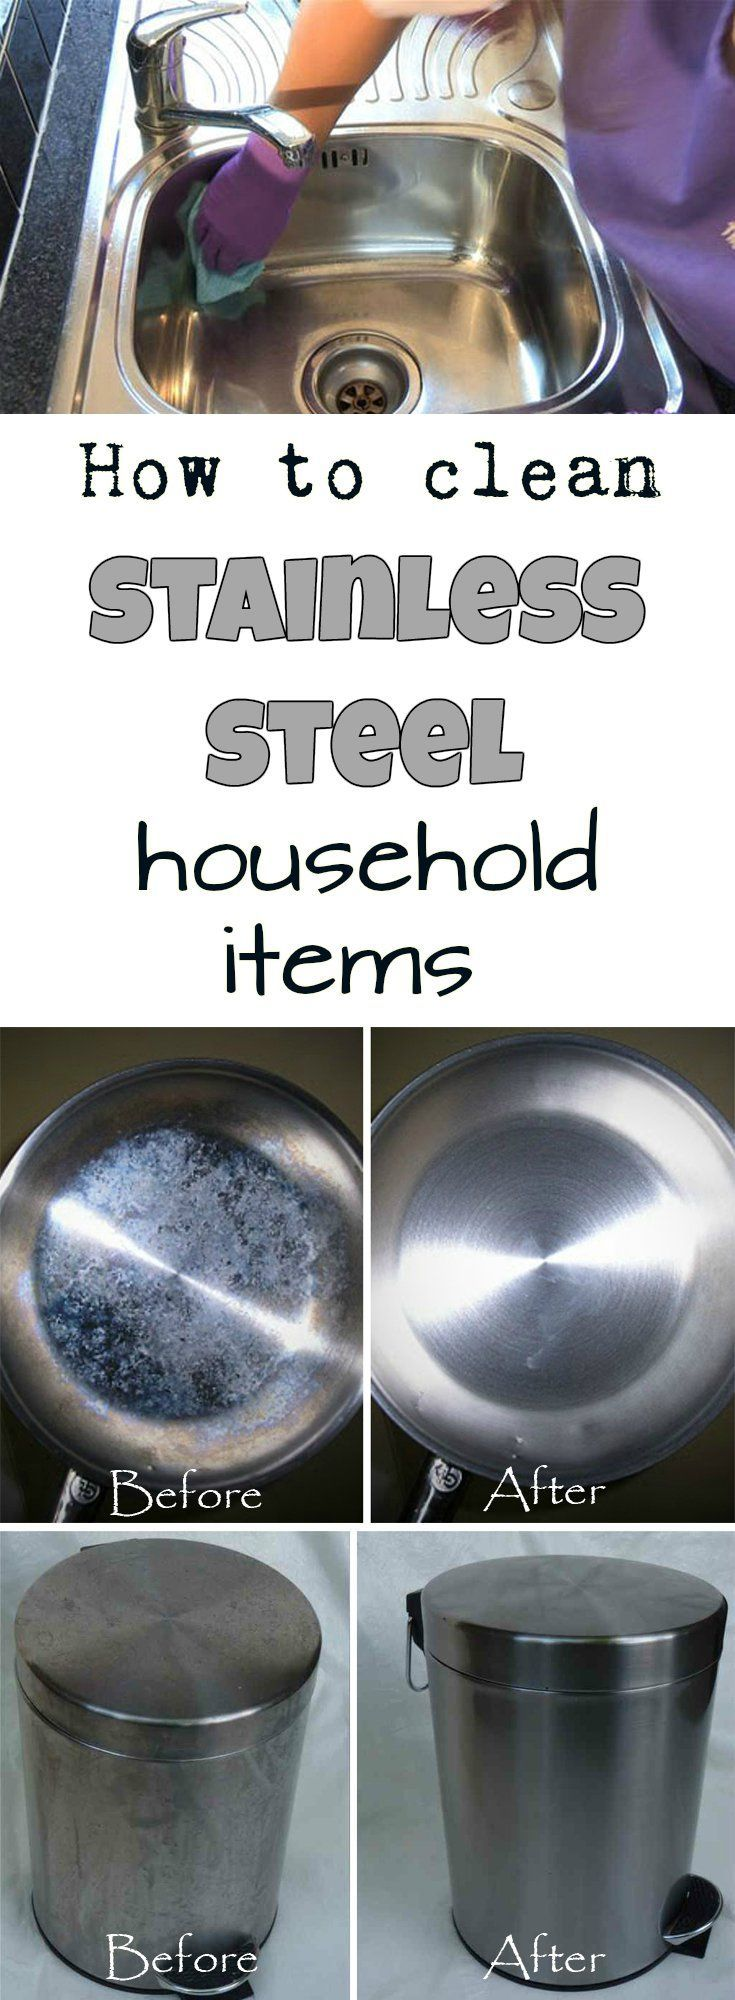 How to clean stainless steel household items - CleaningDIY.net #howtoclean